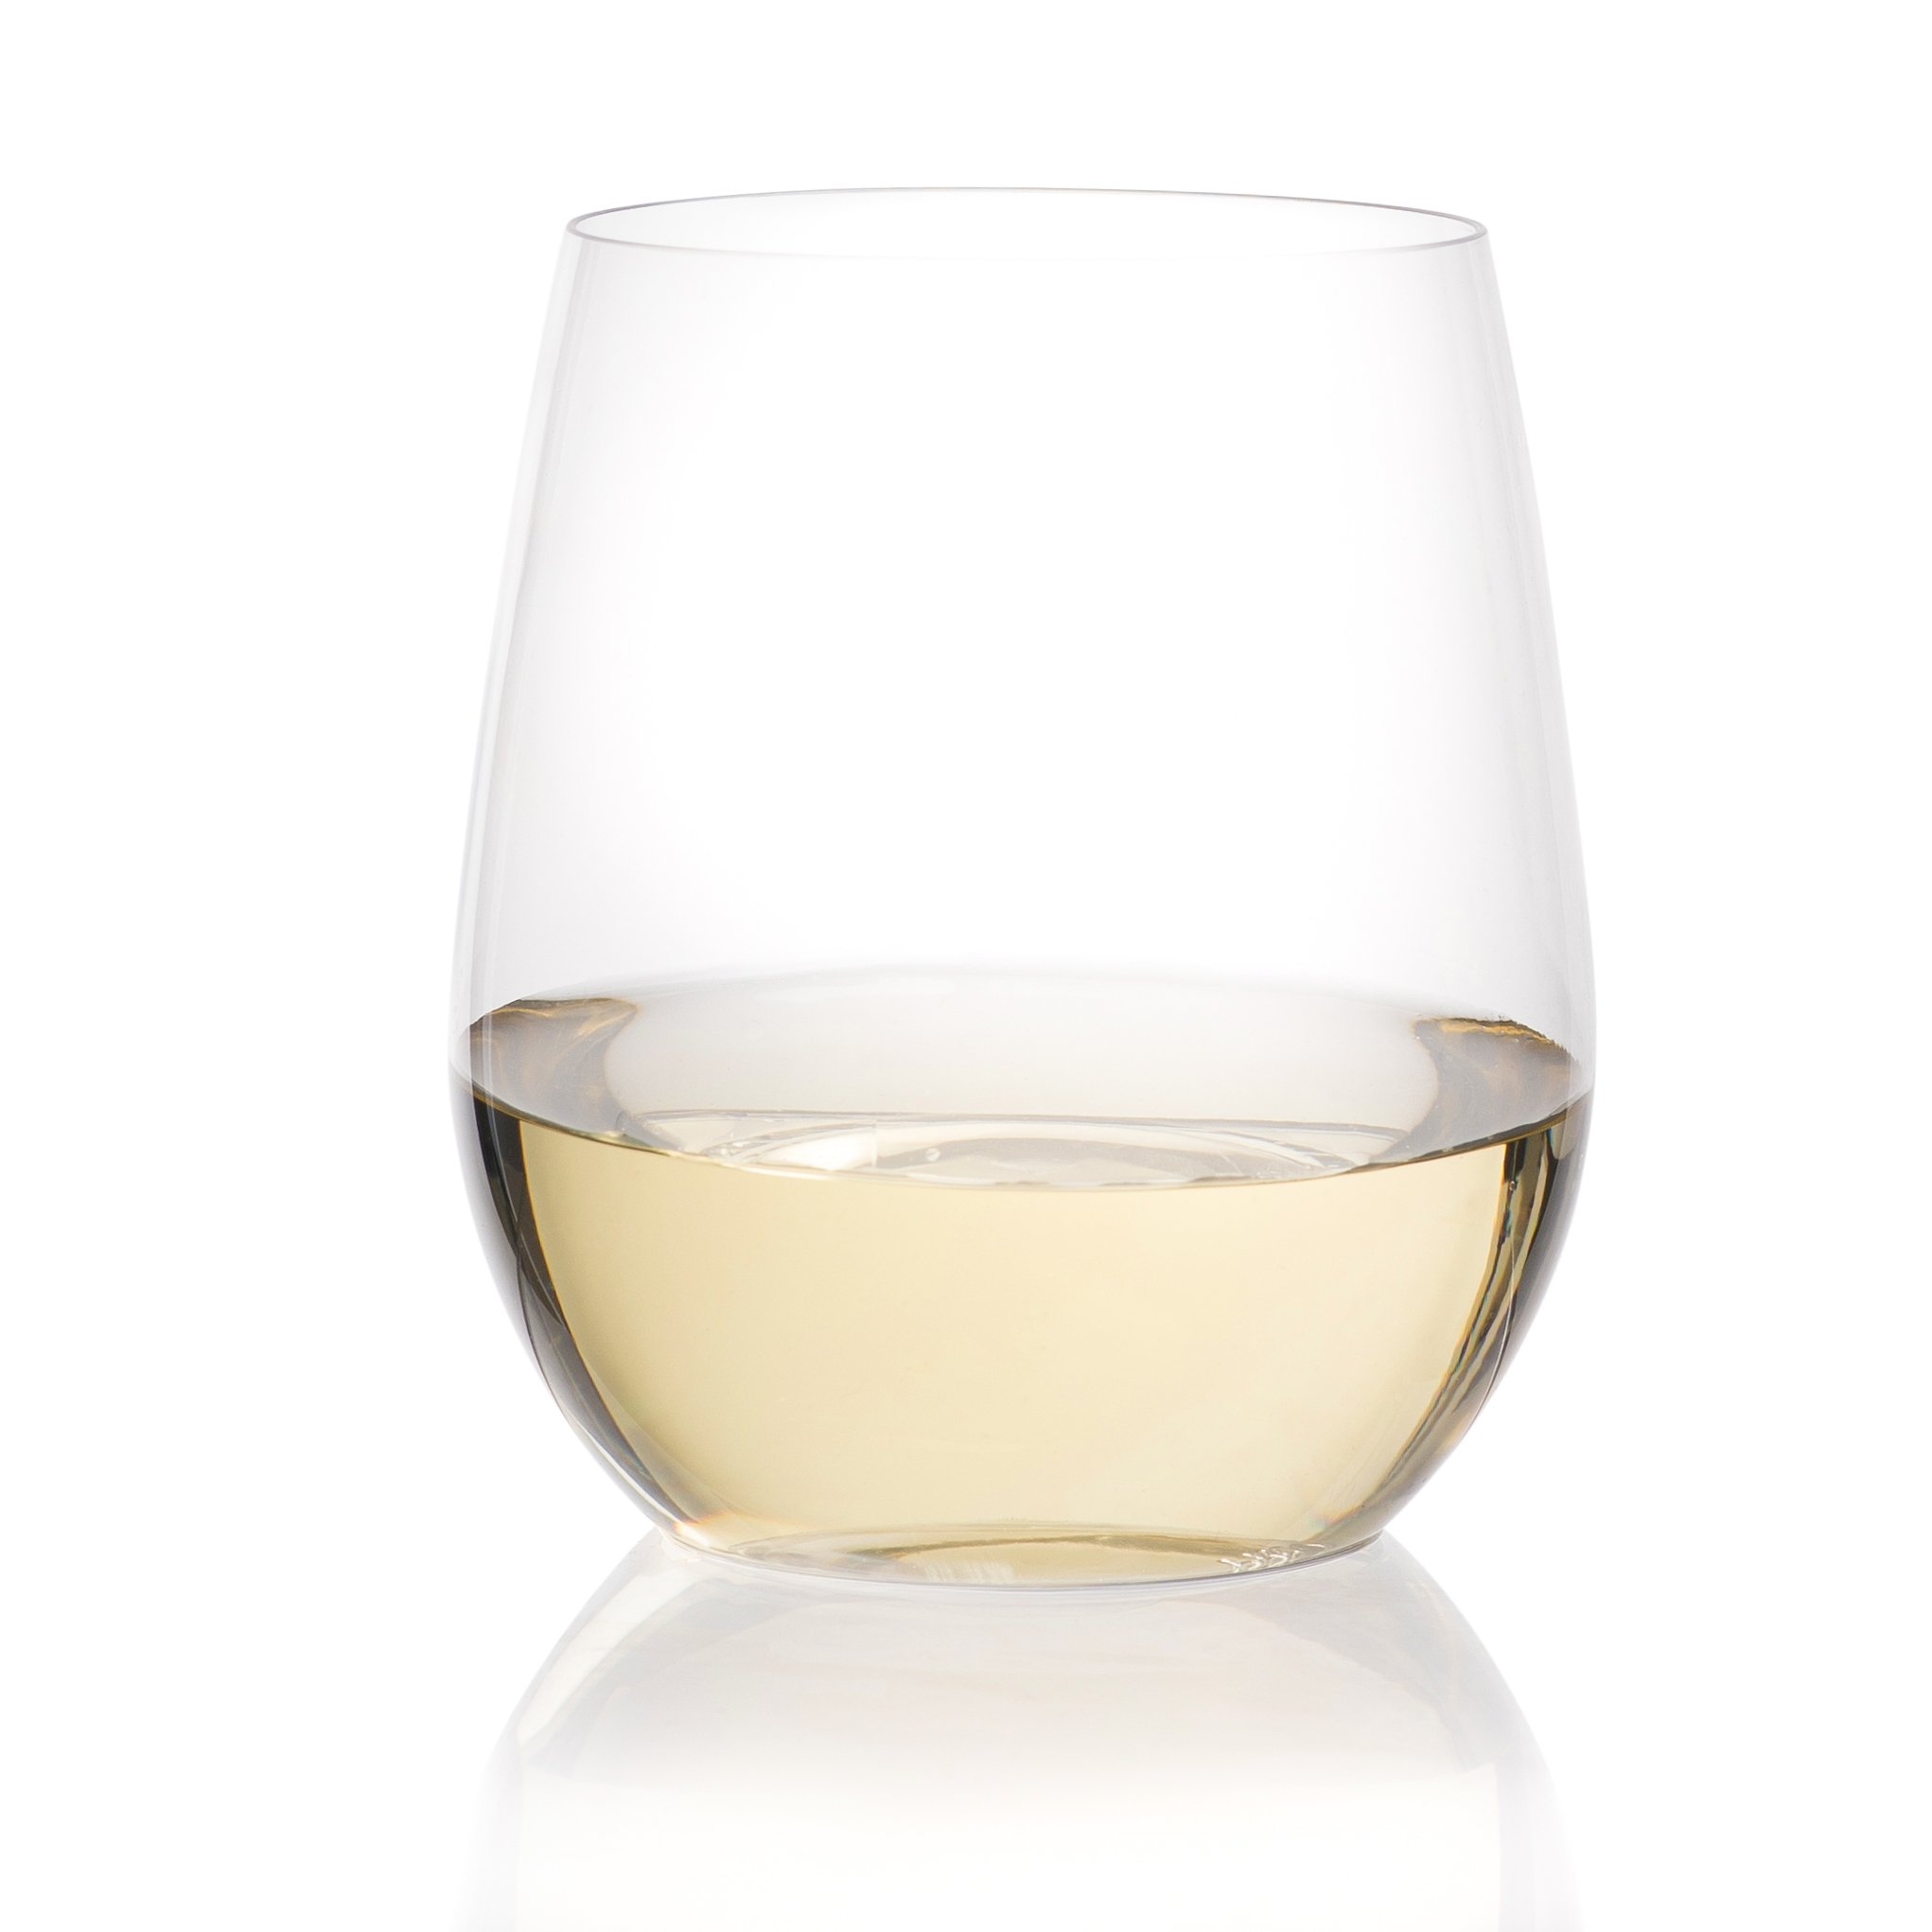 24 Plastic Wine Glasses | Stemless Wine Cups - 20 ounce Clear Plastic Unbreakable Wine Glasses Disposable Reusable Shatterproof